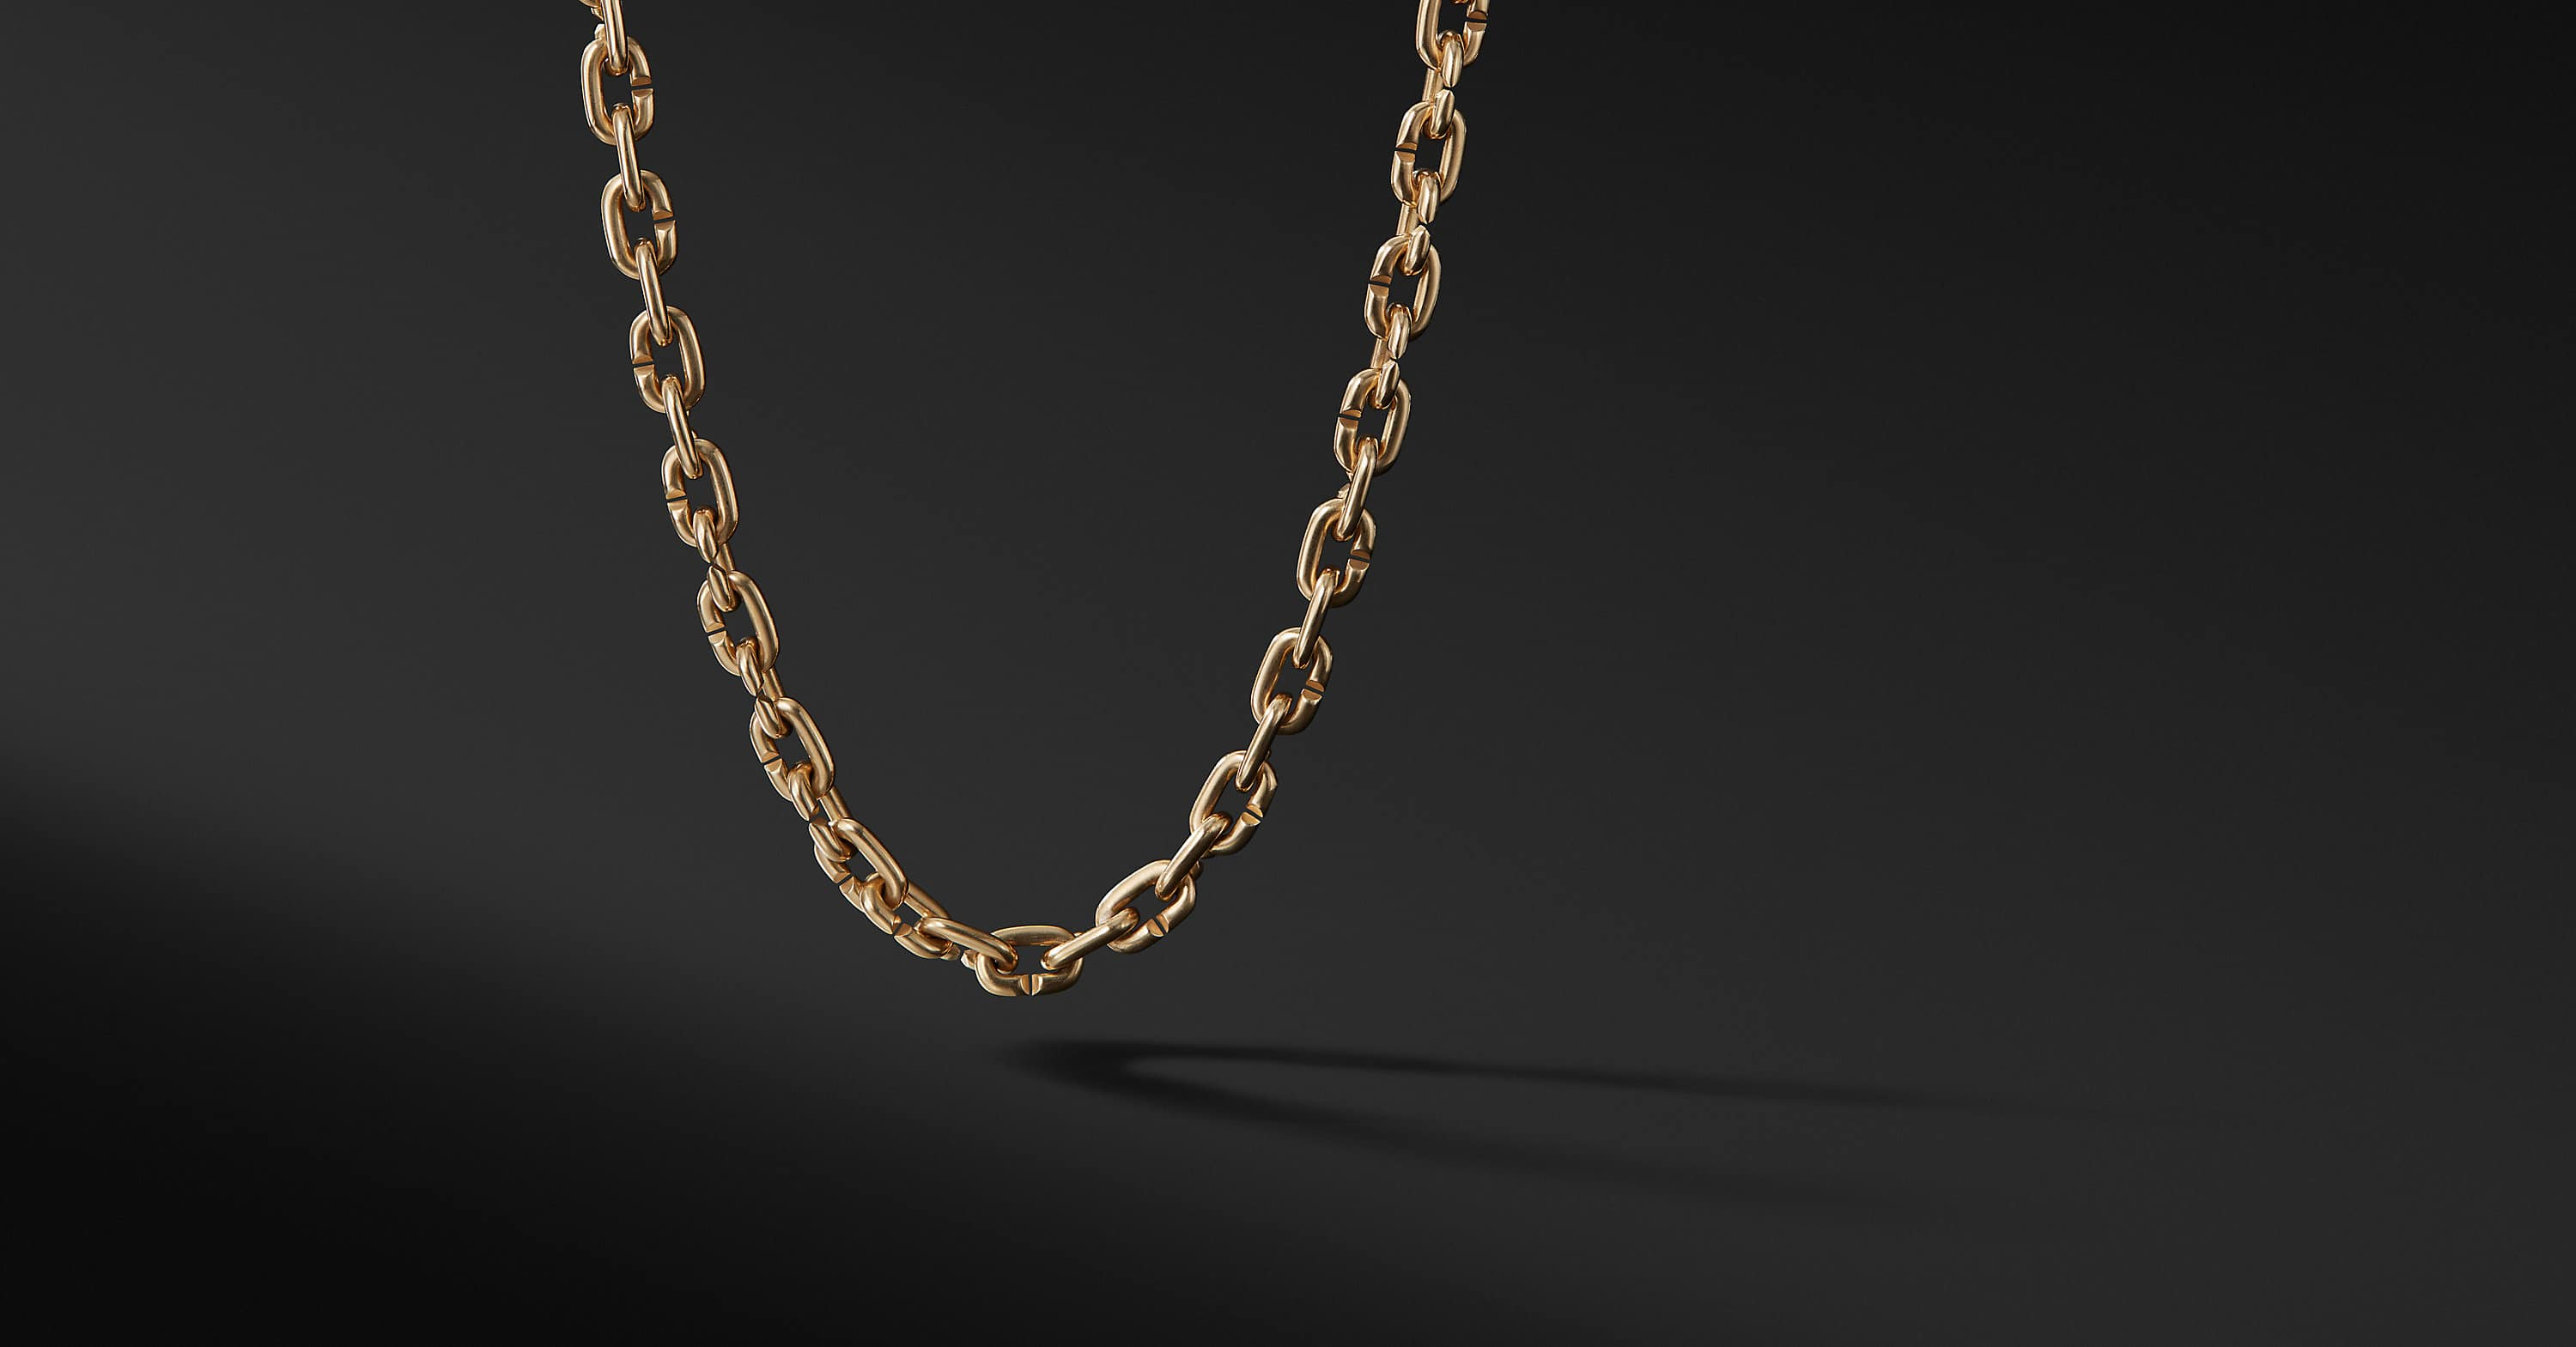 Chain Link Narrow Necklace in 18K Gold